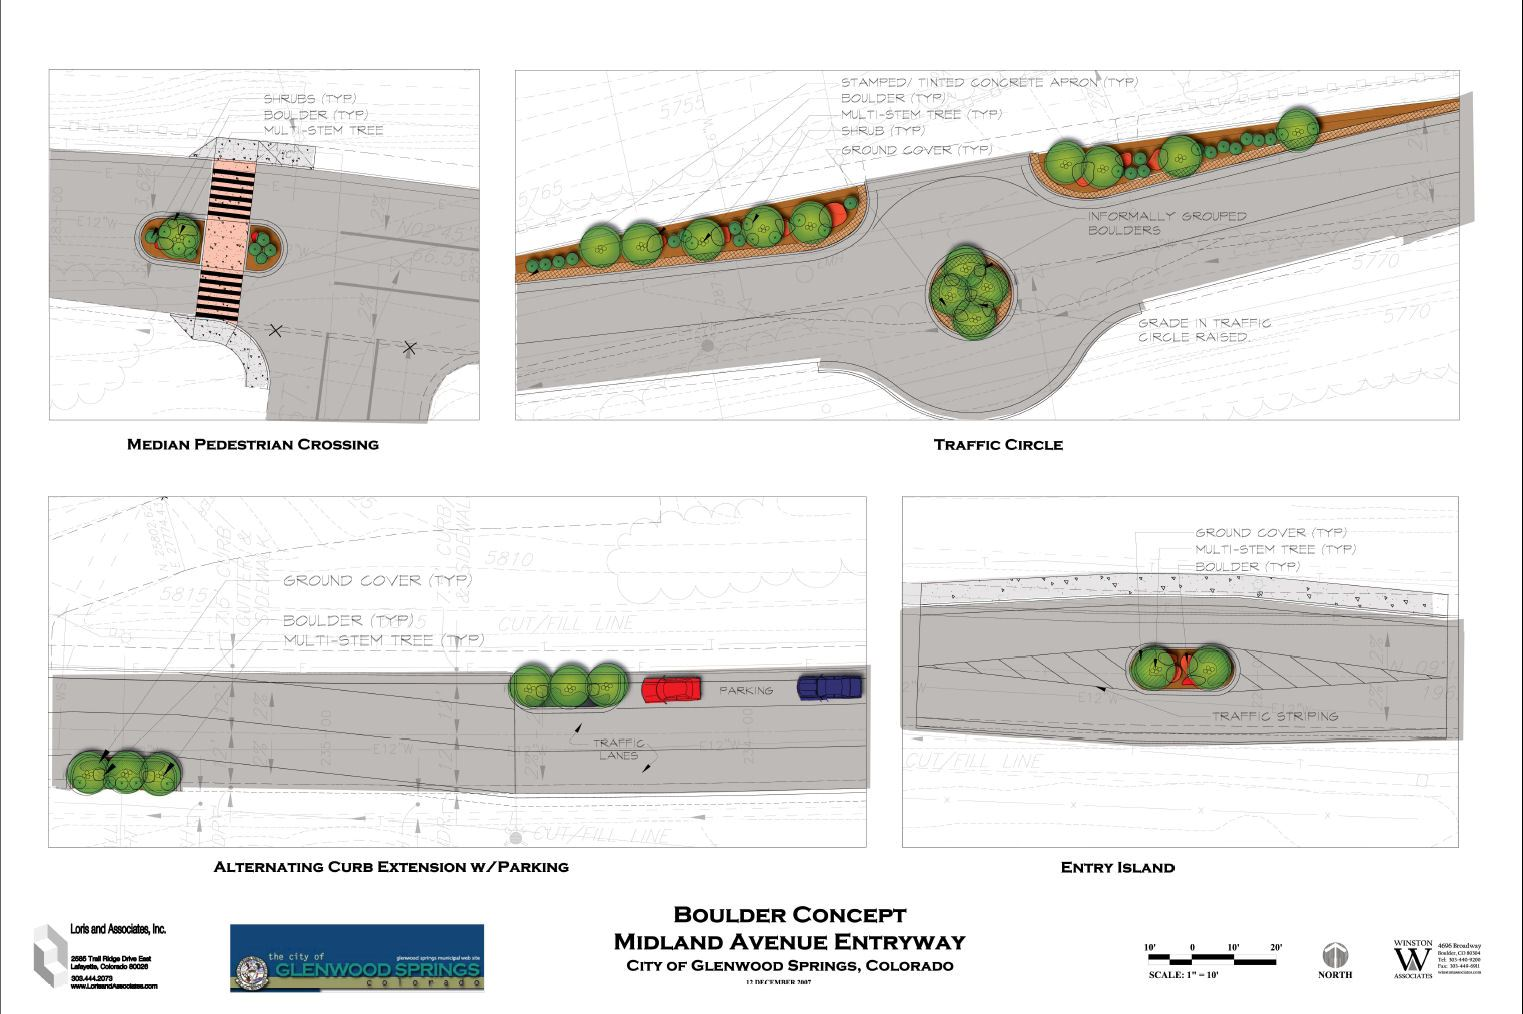 Detailed concept designs of the entryway boulder